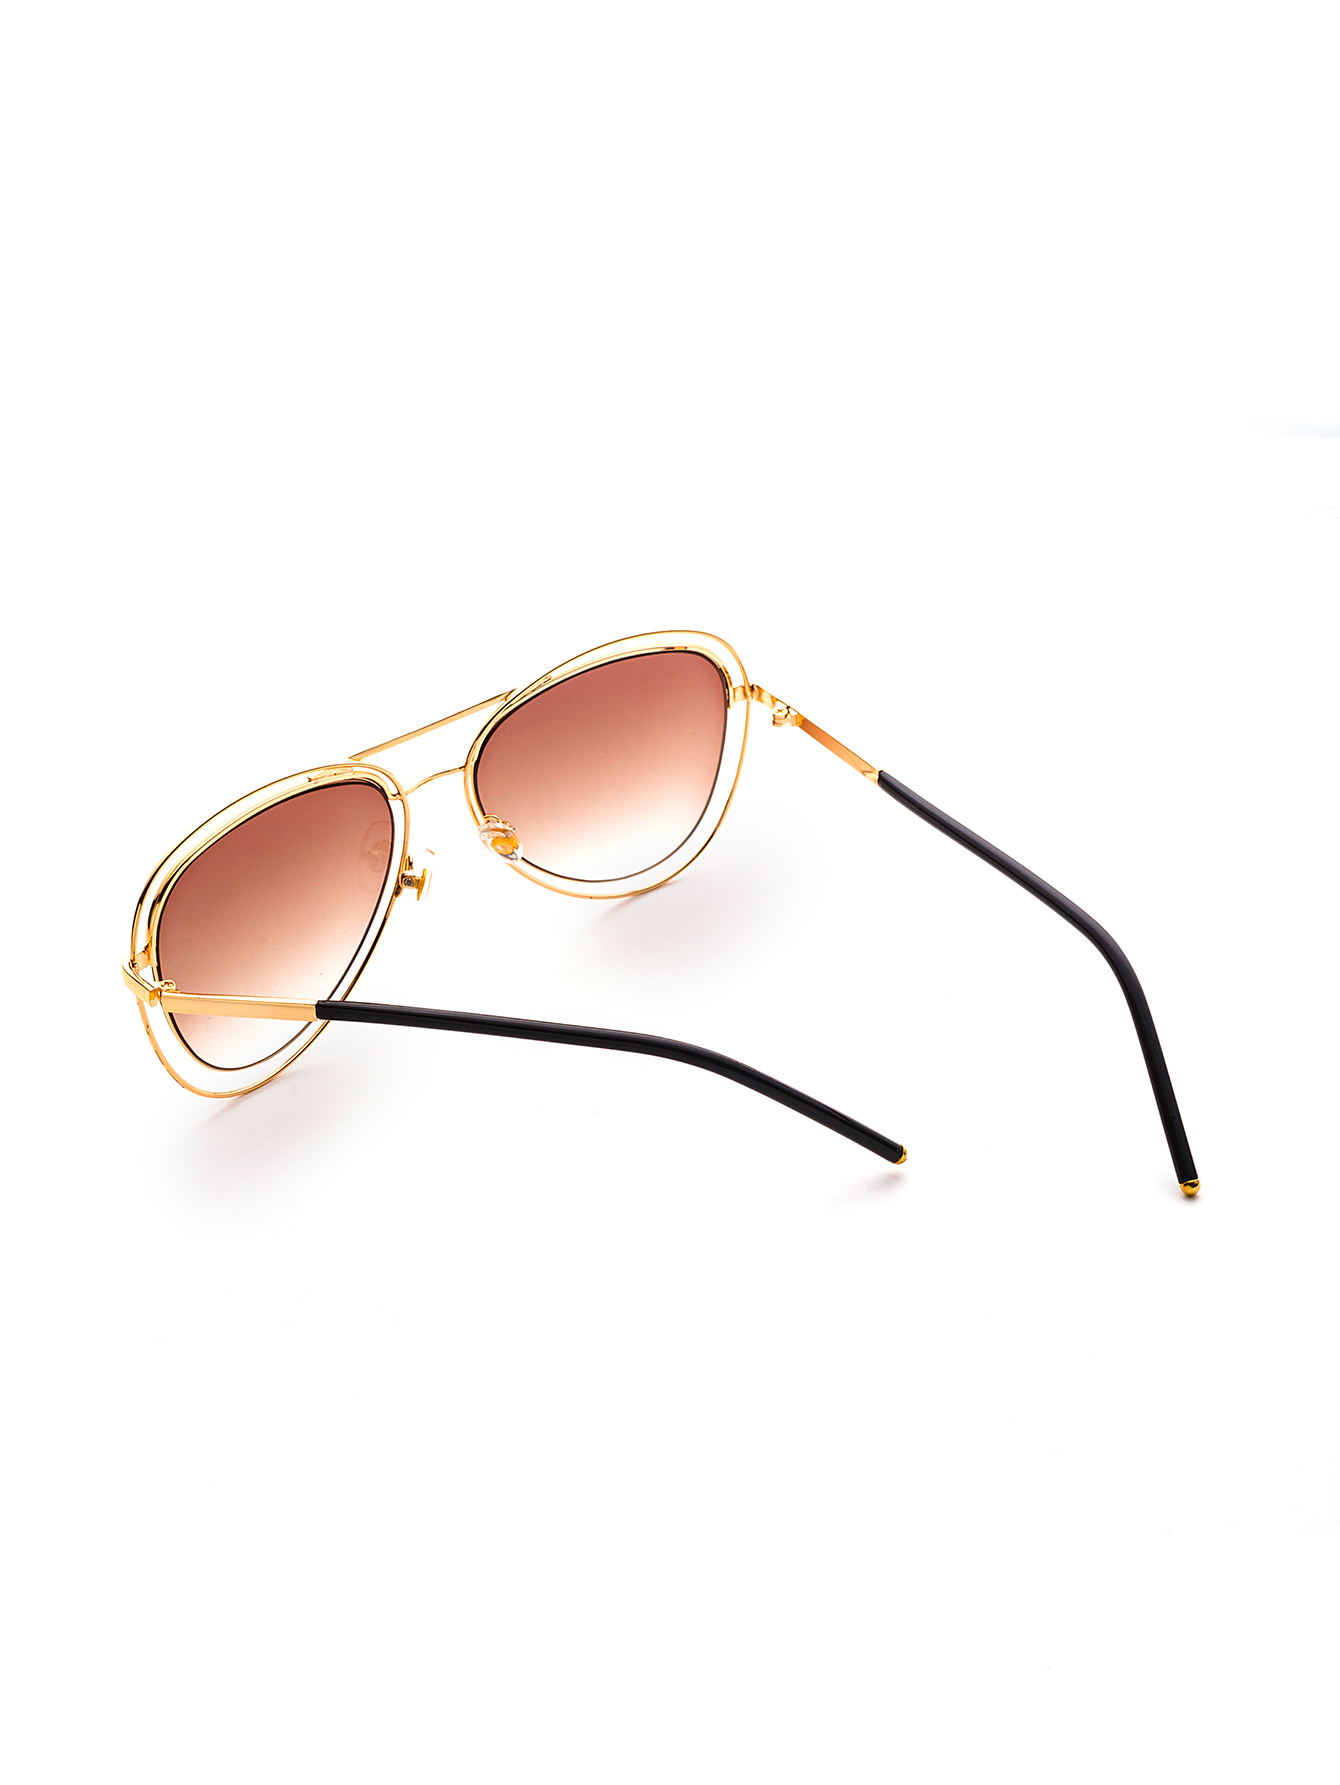 257a8b25c0f91 Double Gold Framed Aviators Featuring Brown Coloured Lens on Luulla